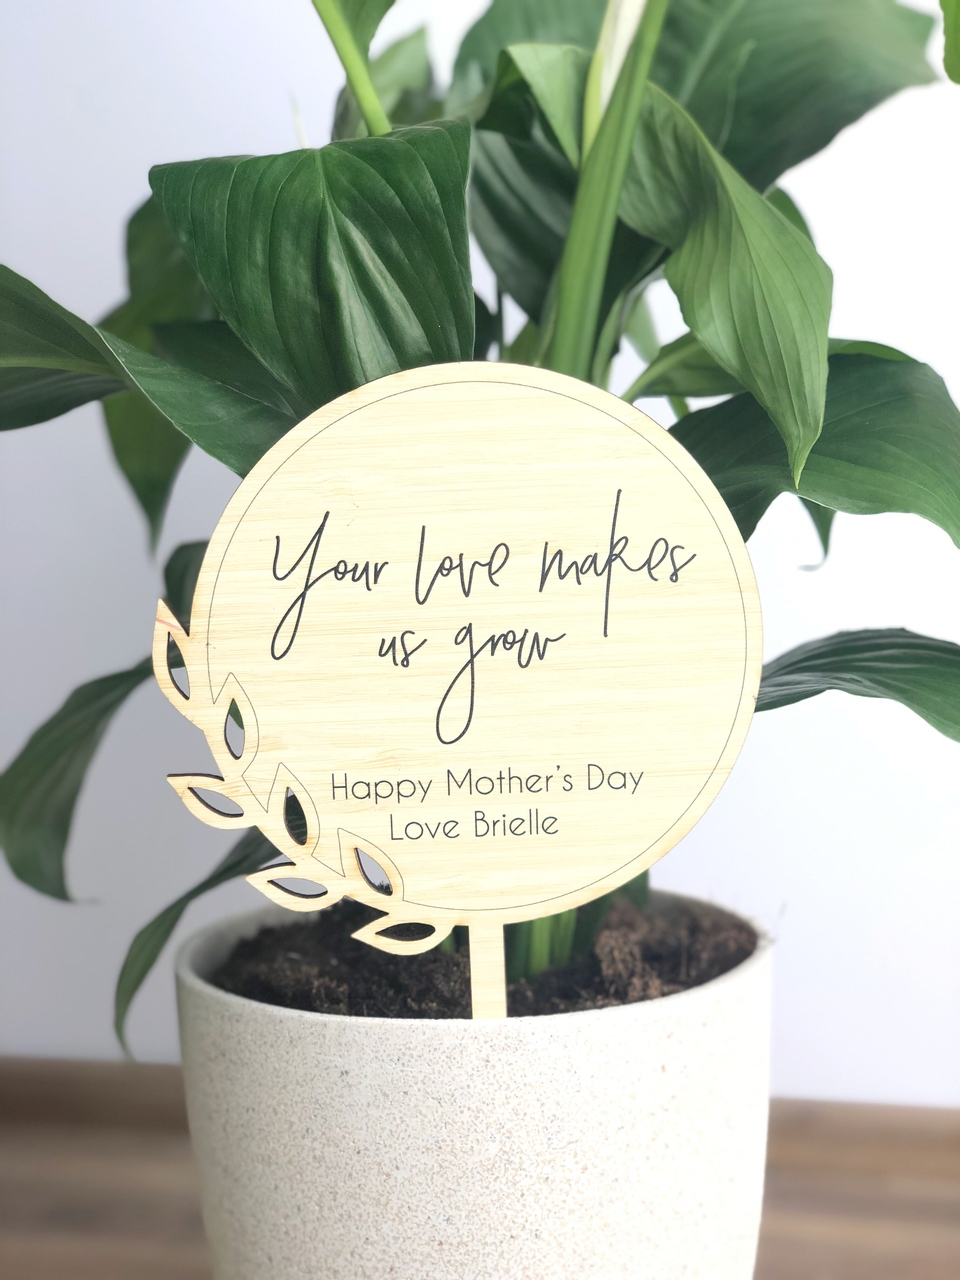 Mothers Day Gift - Your love makes us